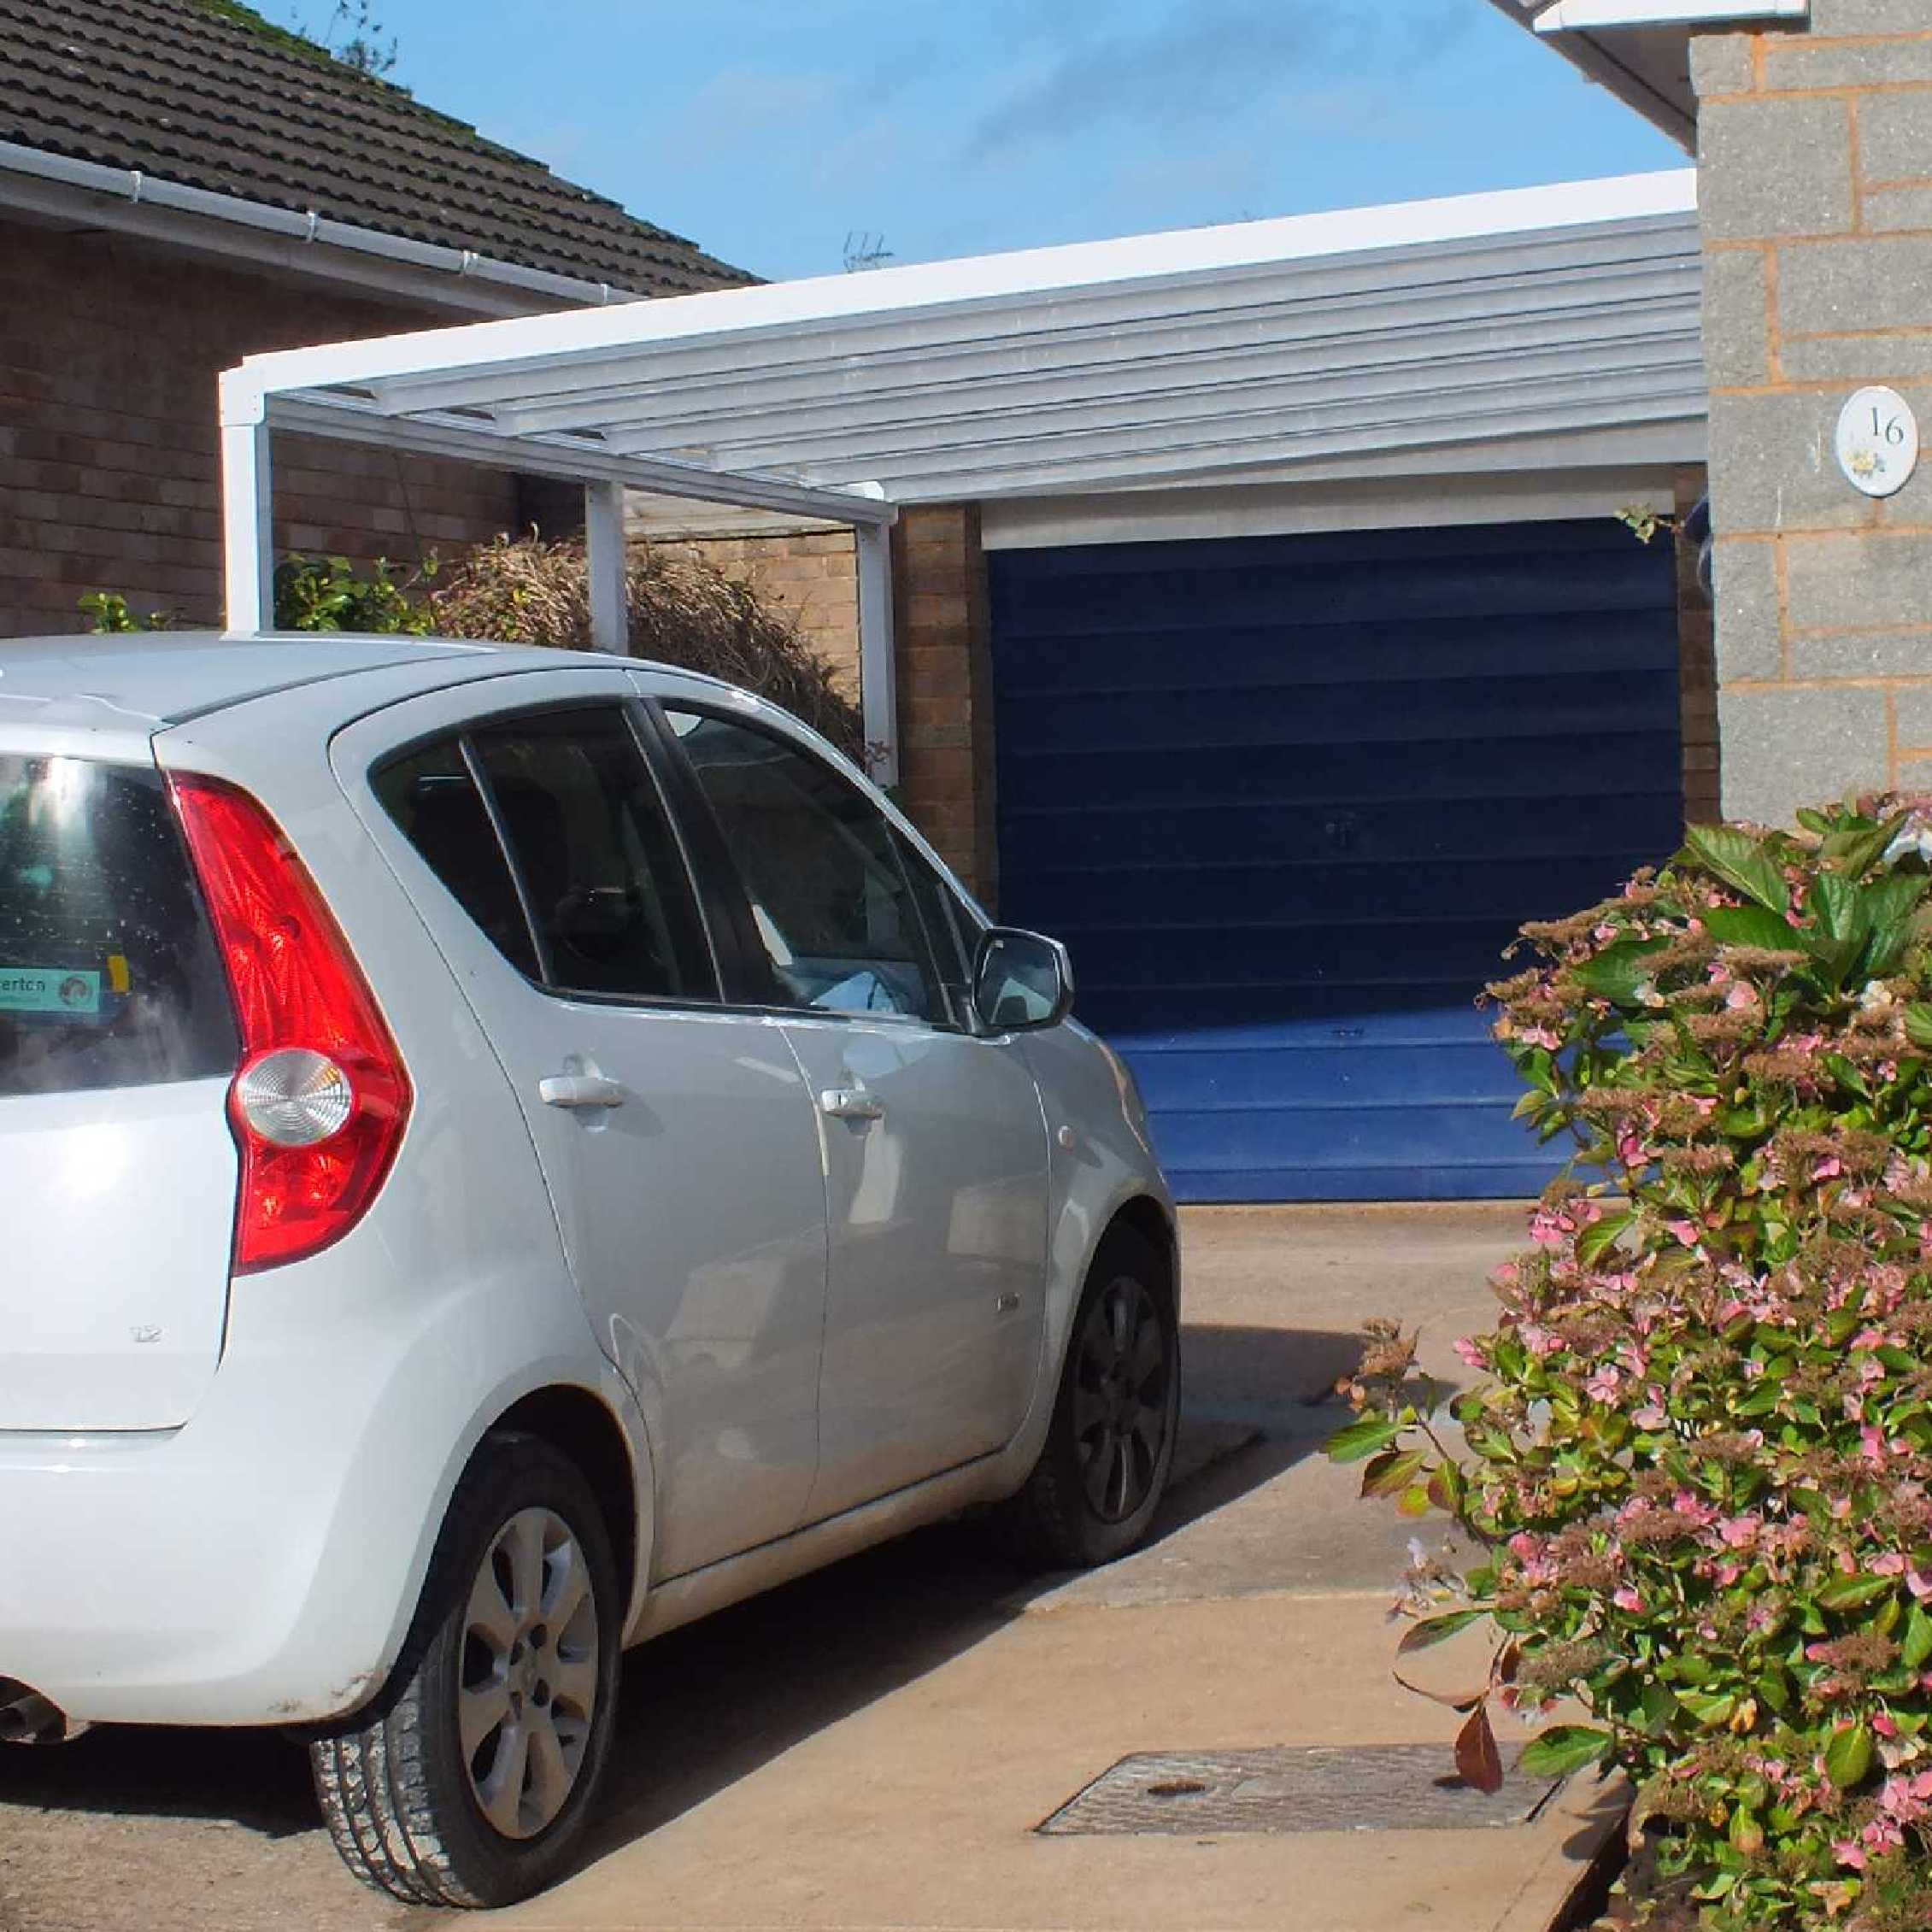 Buy Omega Smart Lean-To Canopy with 16mm Polycarbonate Glazing - 12.0m (W) x 3.0m (P), (5) Supporting Posts online today